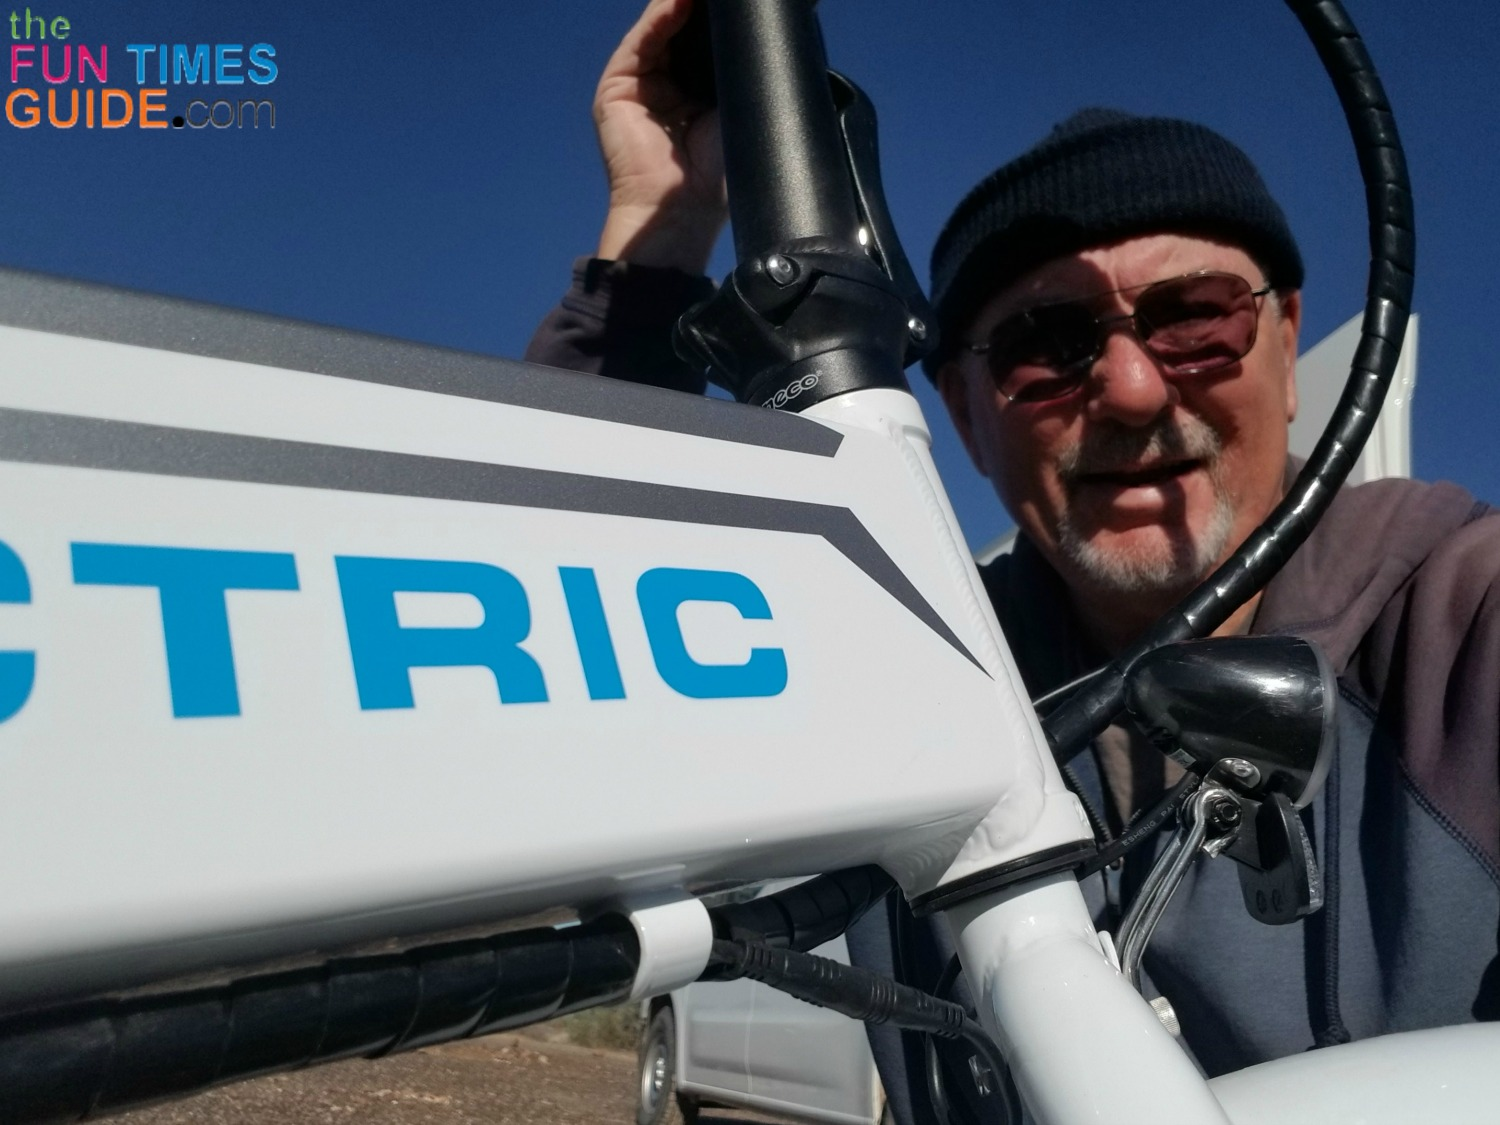 Fat Tire Electric Bike Review: Looking For A Cheap eBike? I've Got Some Helpful Tips In My Lectric XP E-Bike Review